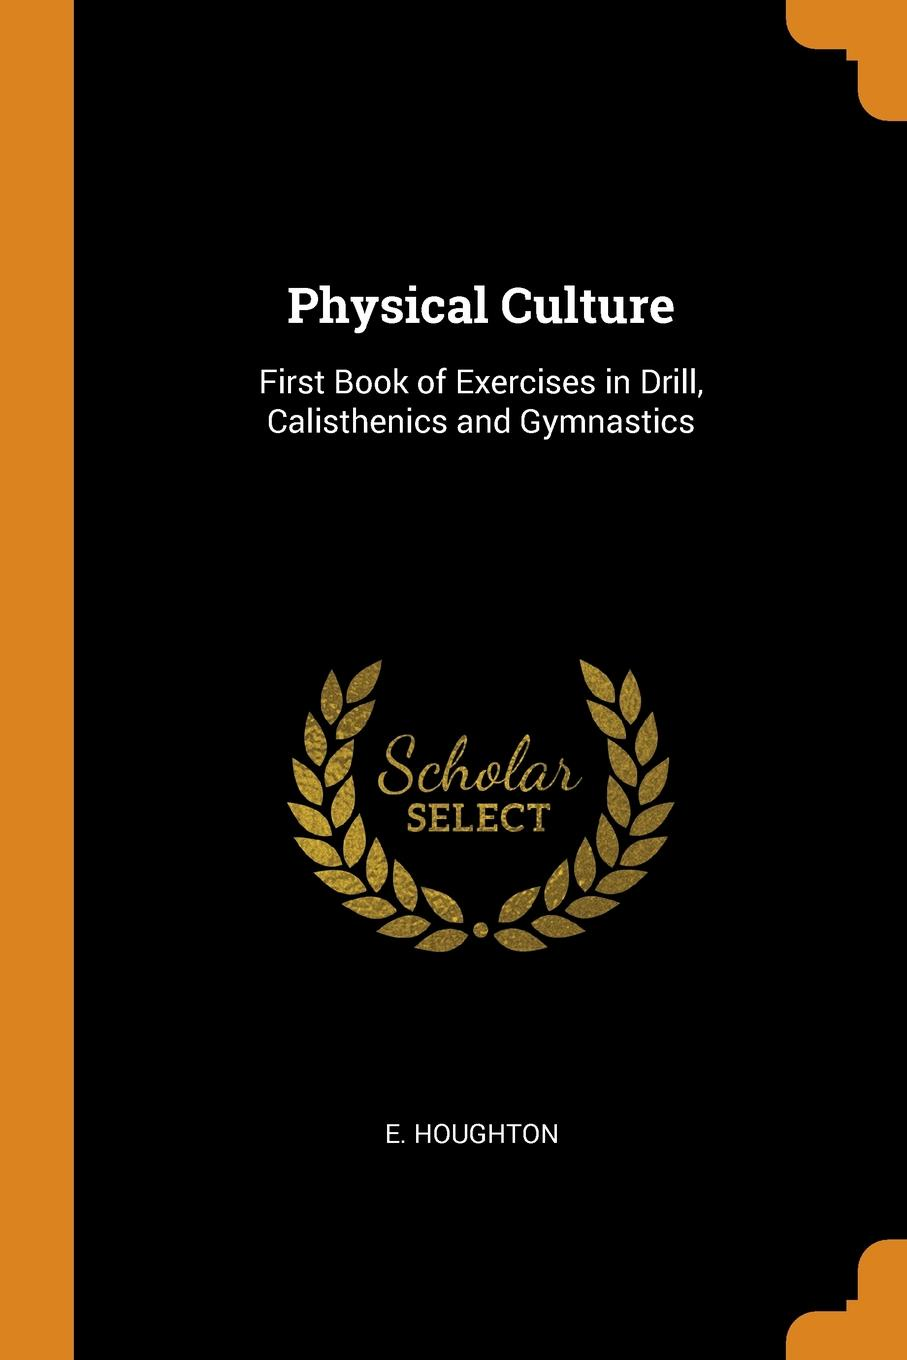 Physical Culture. First Book of Exercises in Drill, Calisthenics and Gymnastics